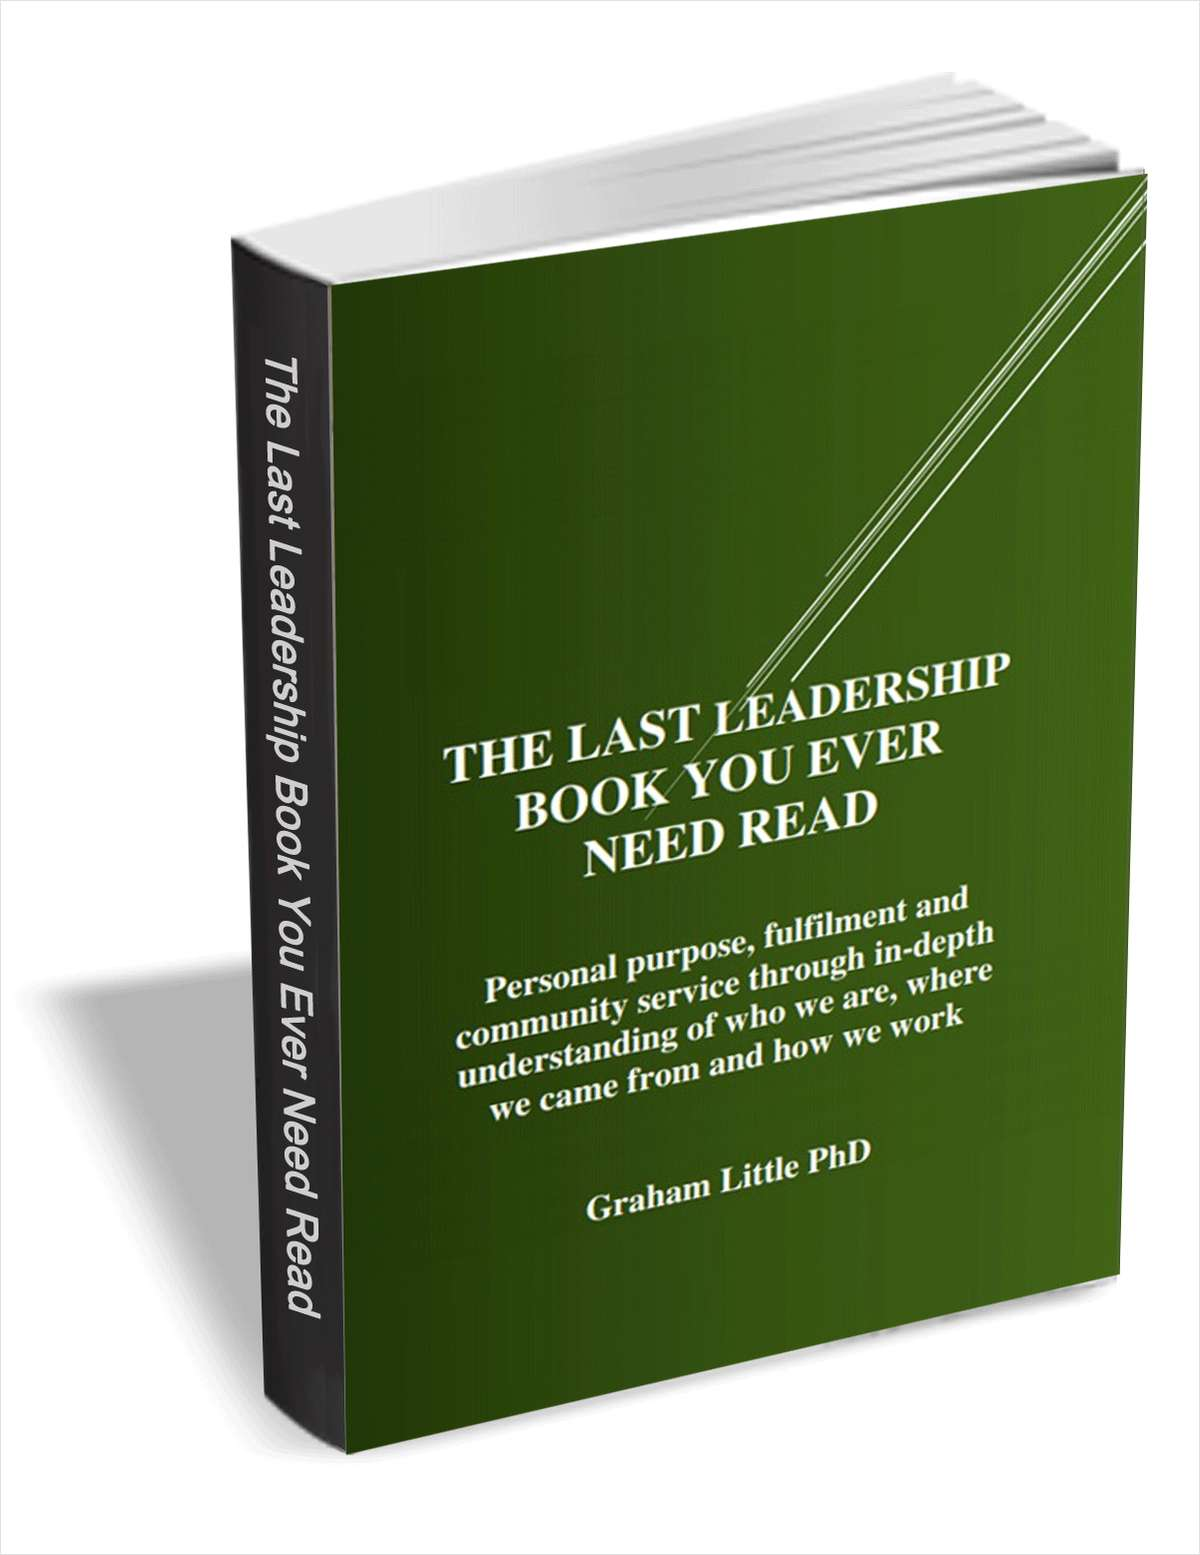 The Last Leadership Book You Ever Need Read